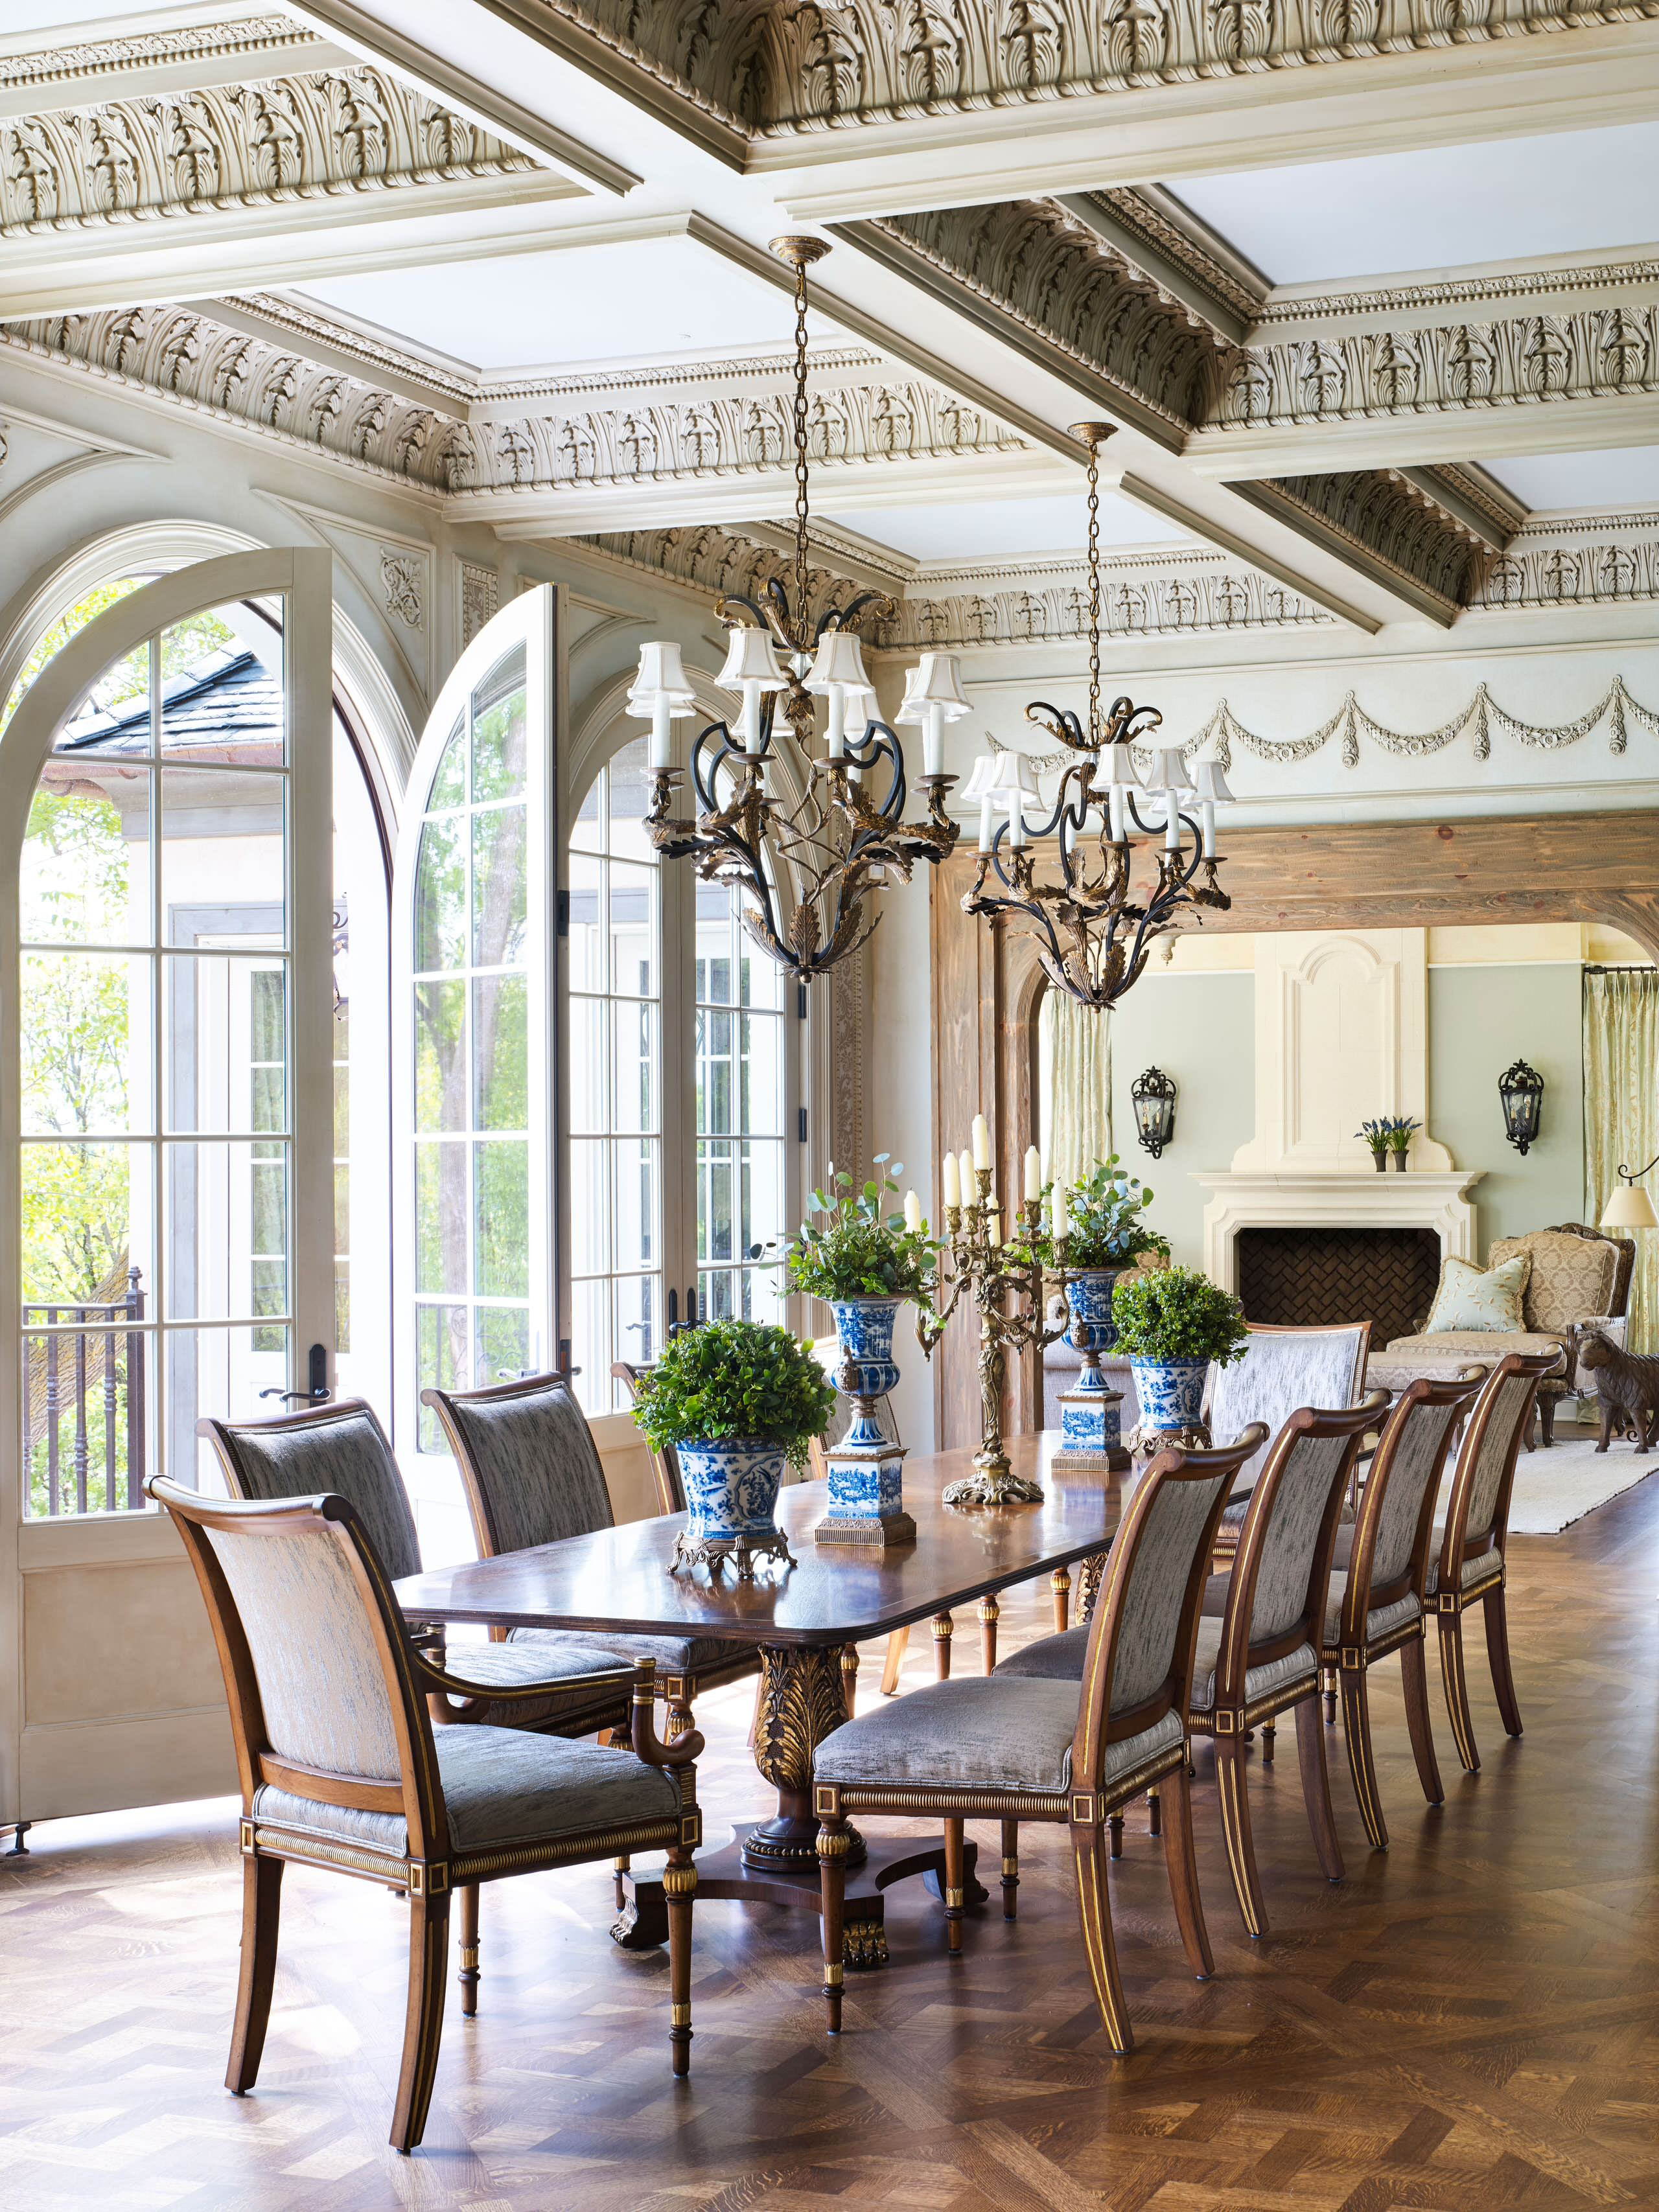 Victorian Dining Room Pictures Ideas, Victorian Style Dining Room Setup